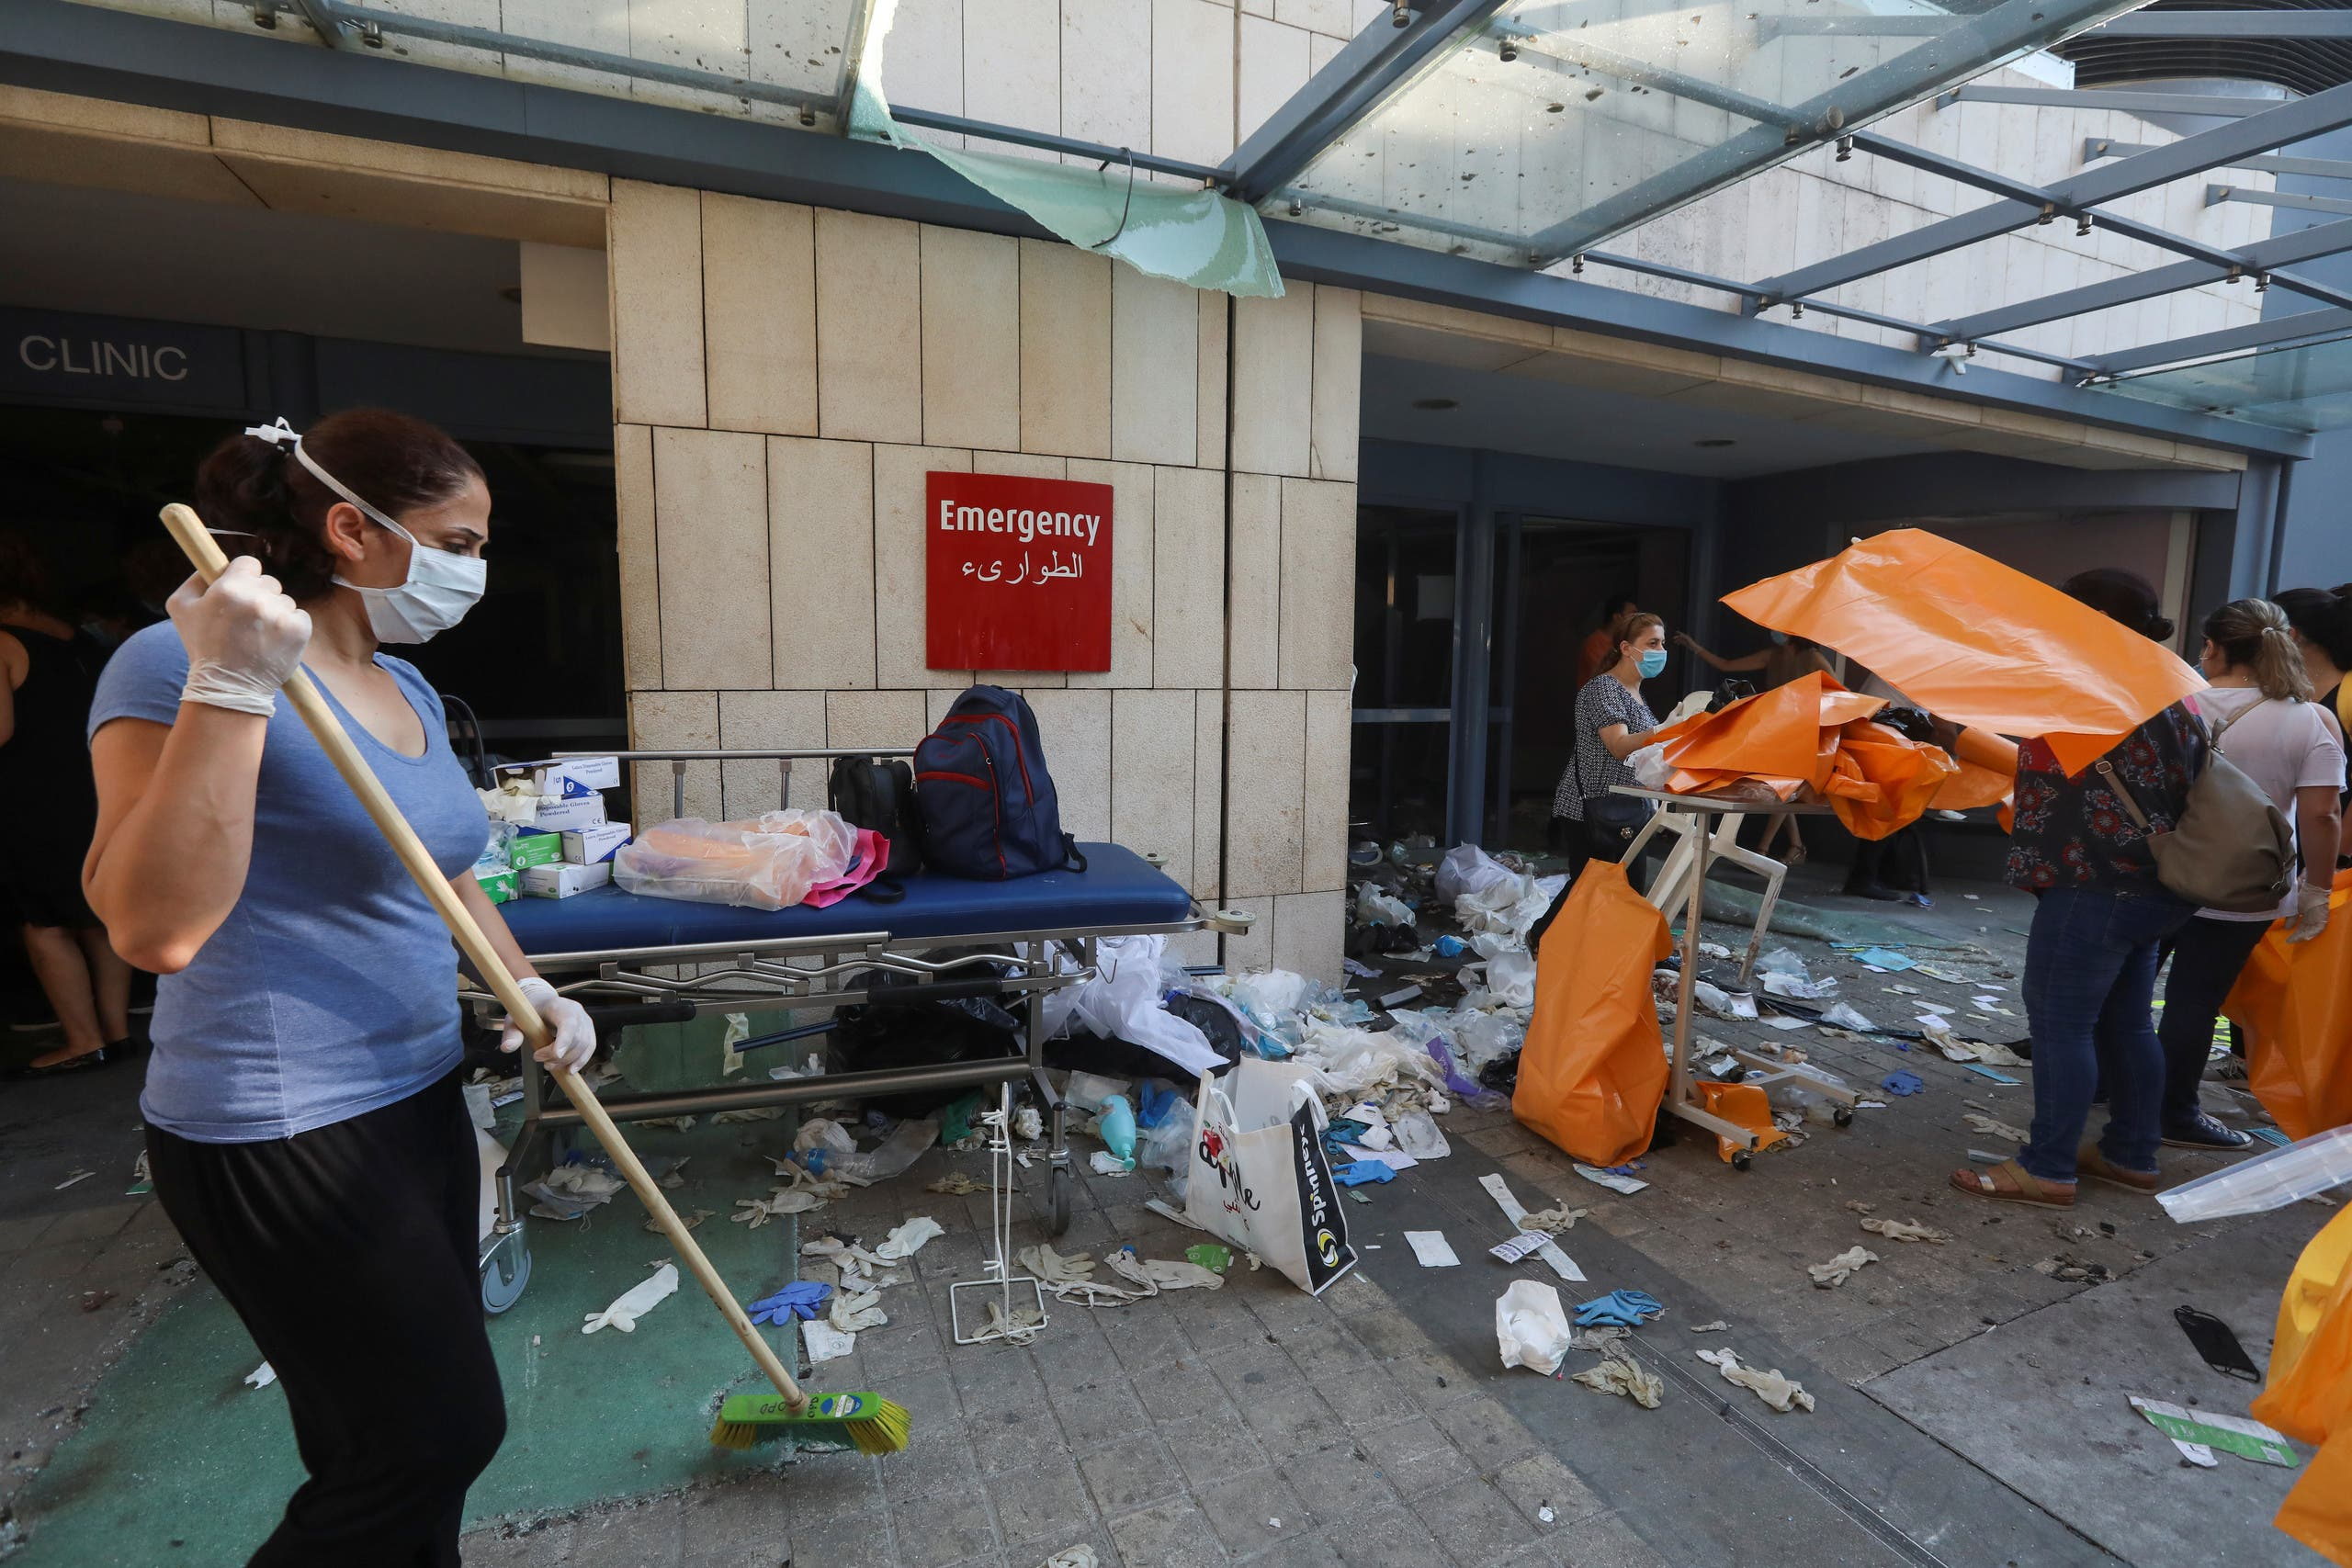 A woman sweeps at a damaged hospital following Tuesday's blast, in Beirut Lebanon August 5, 2020. (Reuters)